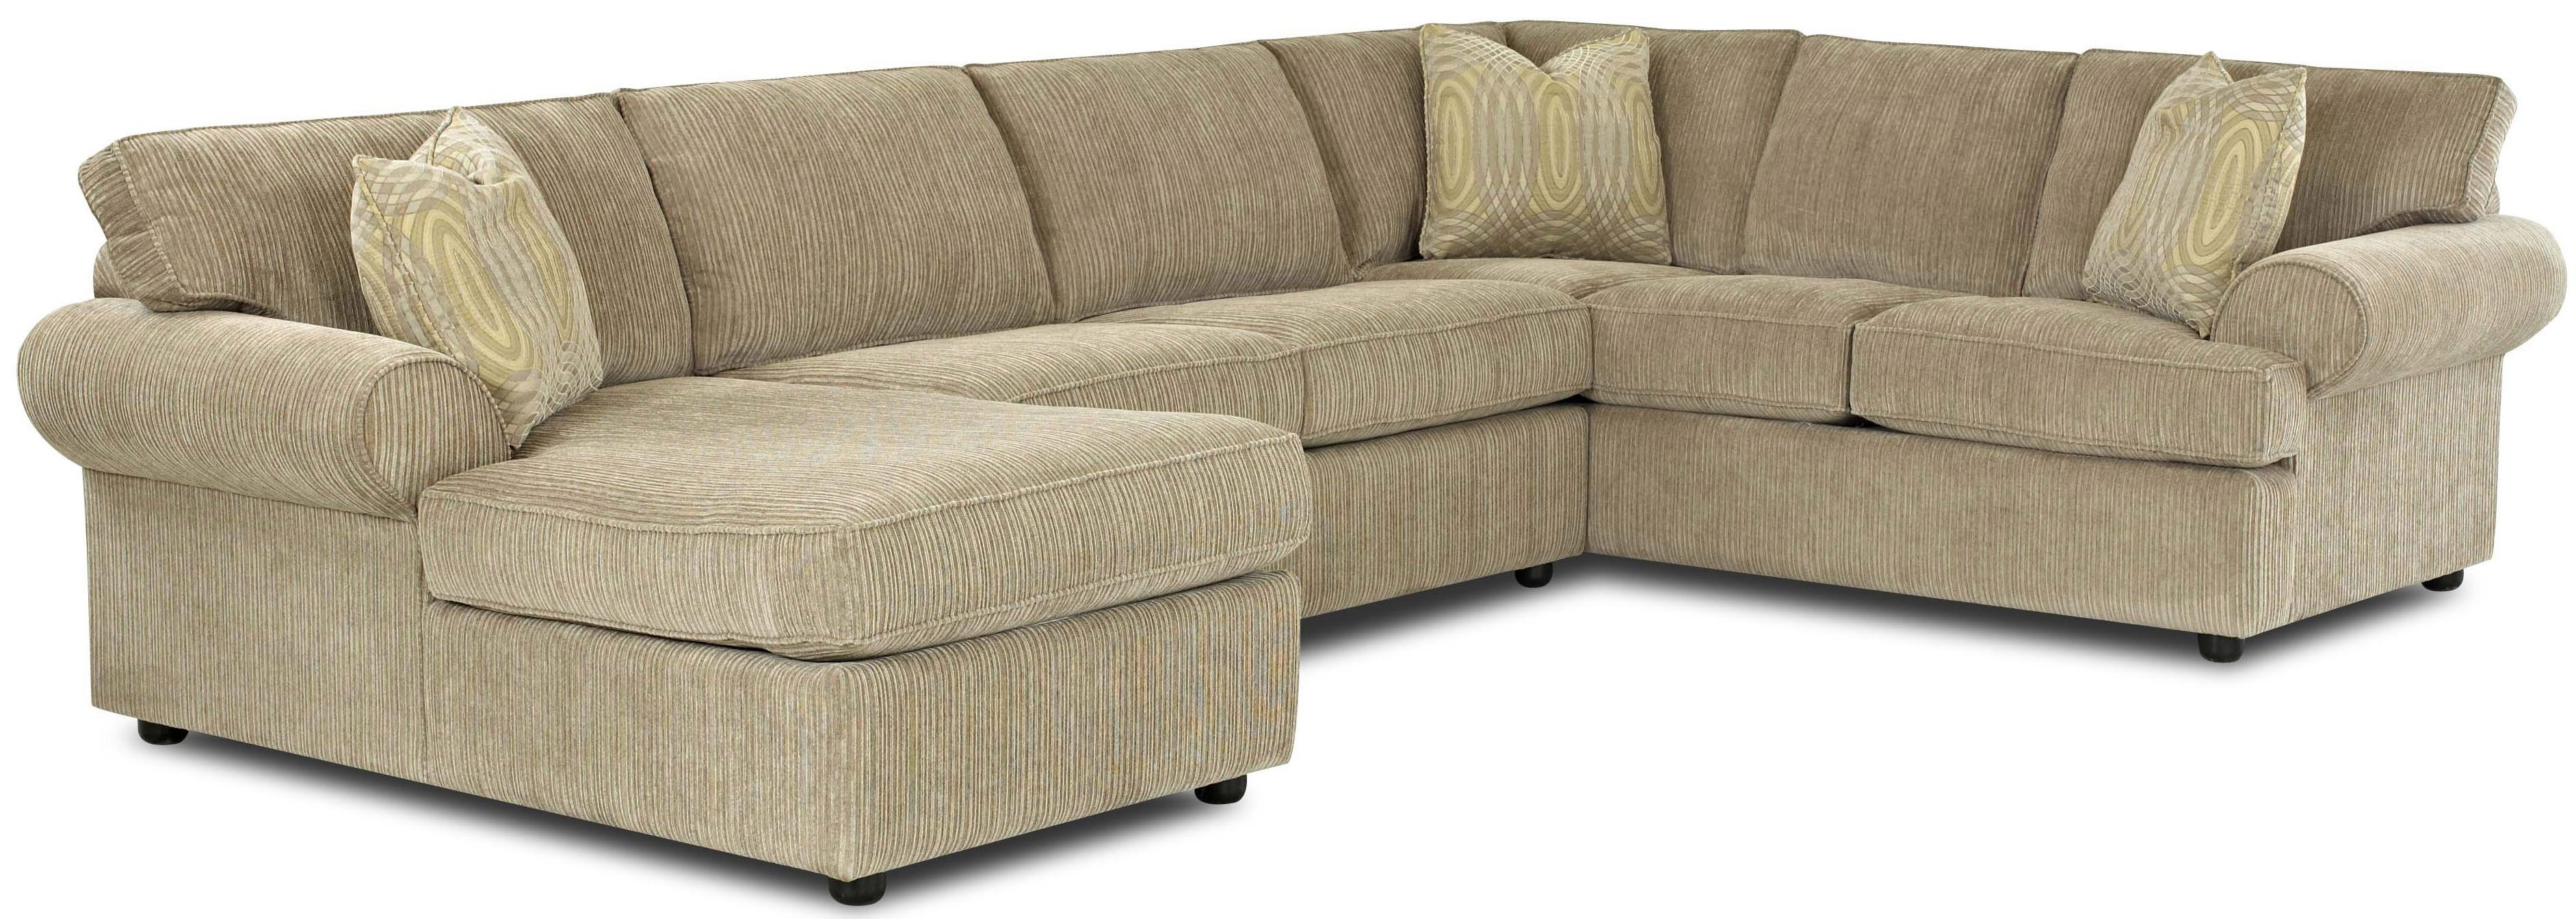 Widely Used Inspirational Sectional Sofas With Chaise 97 For Living Room Sofa Regarding Sectional Sofas With Chaise (View 14 of 15)